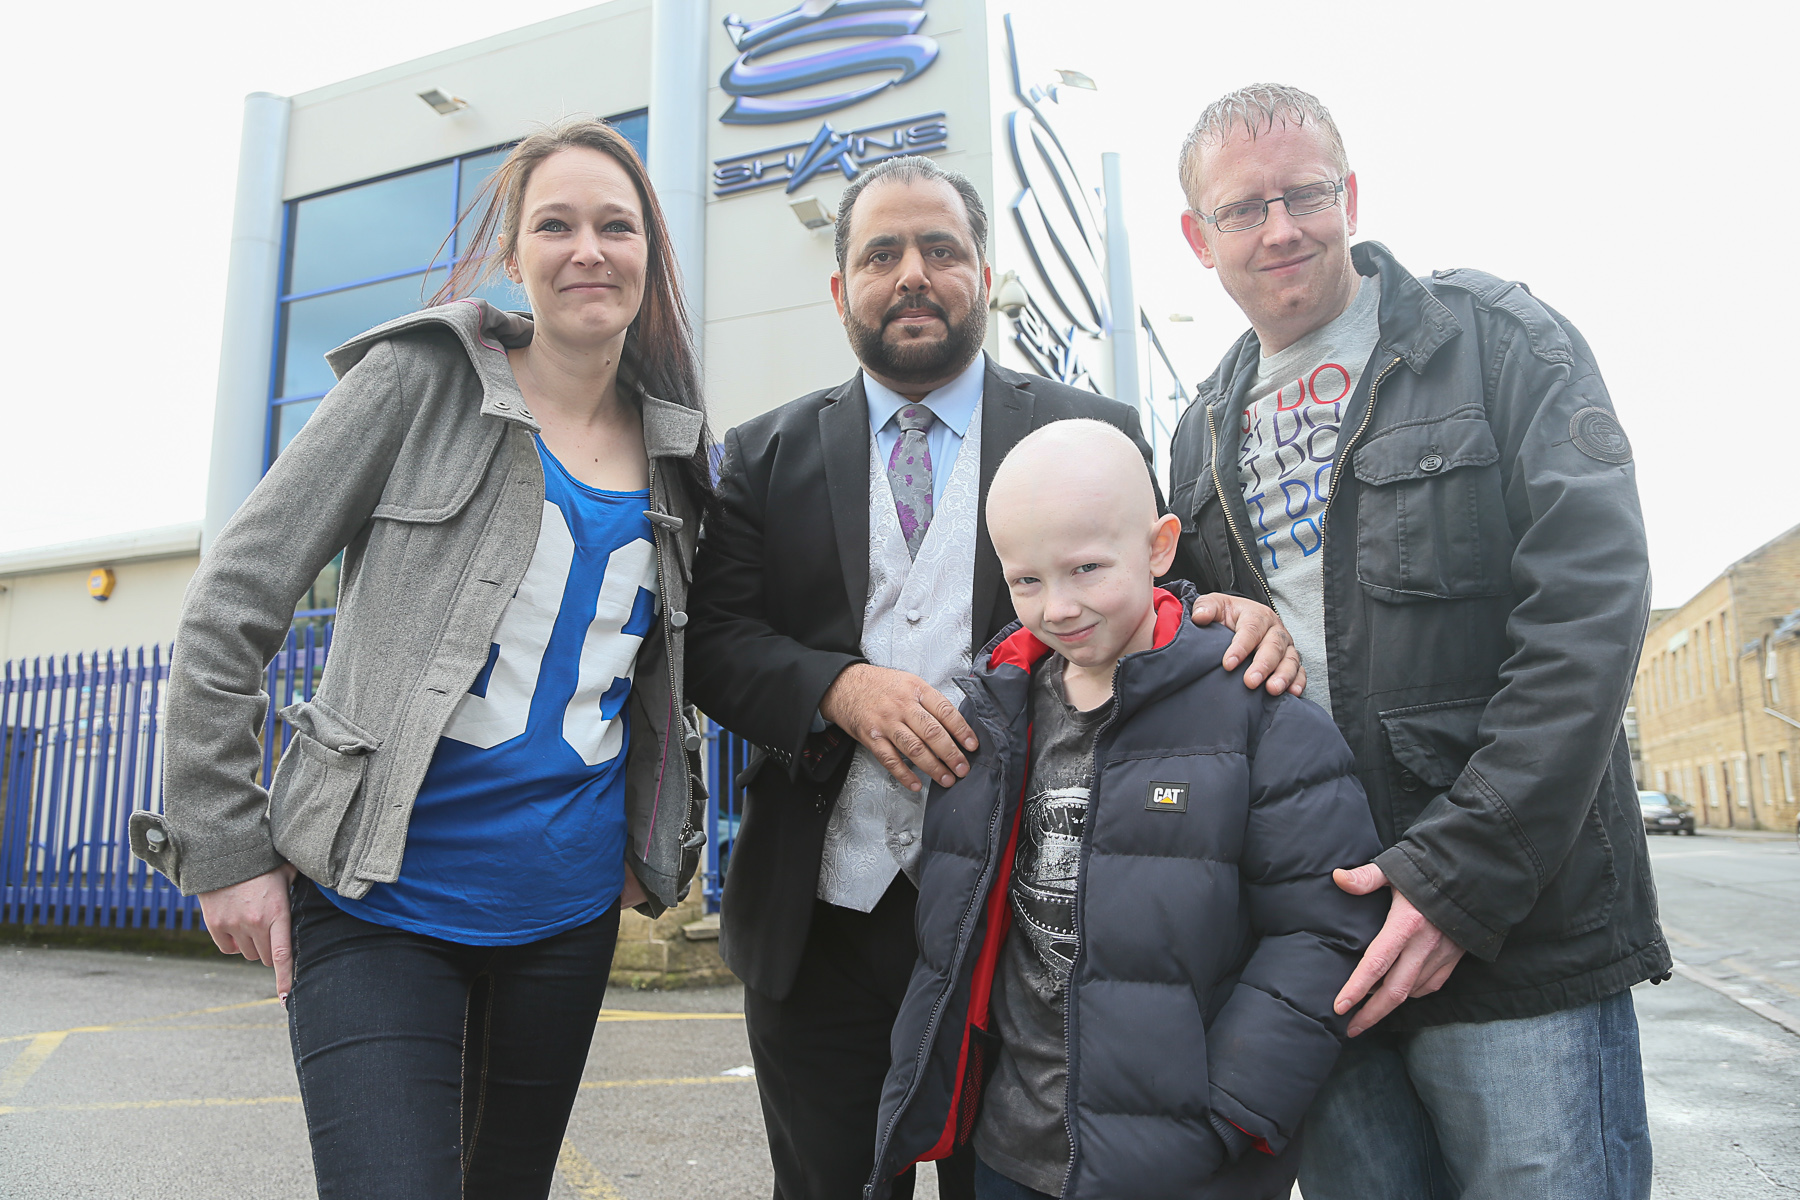 Mum Kim Ager, Javed Bashir, dad Matthew Ingham and Callum Ingham helping promote the Professional Muslims Institute fundraiser on behalf of the young cancer sufferer